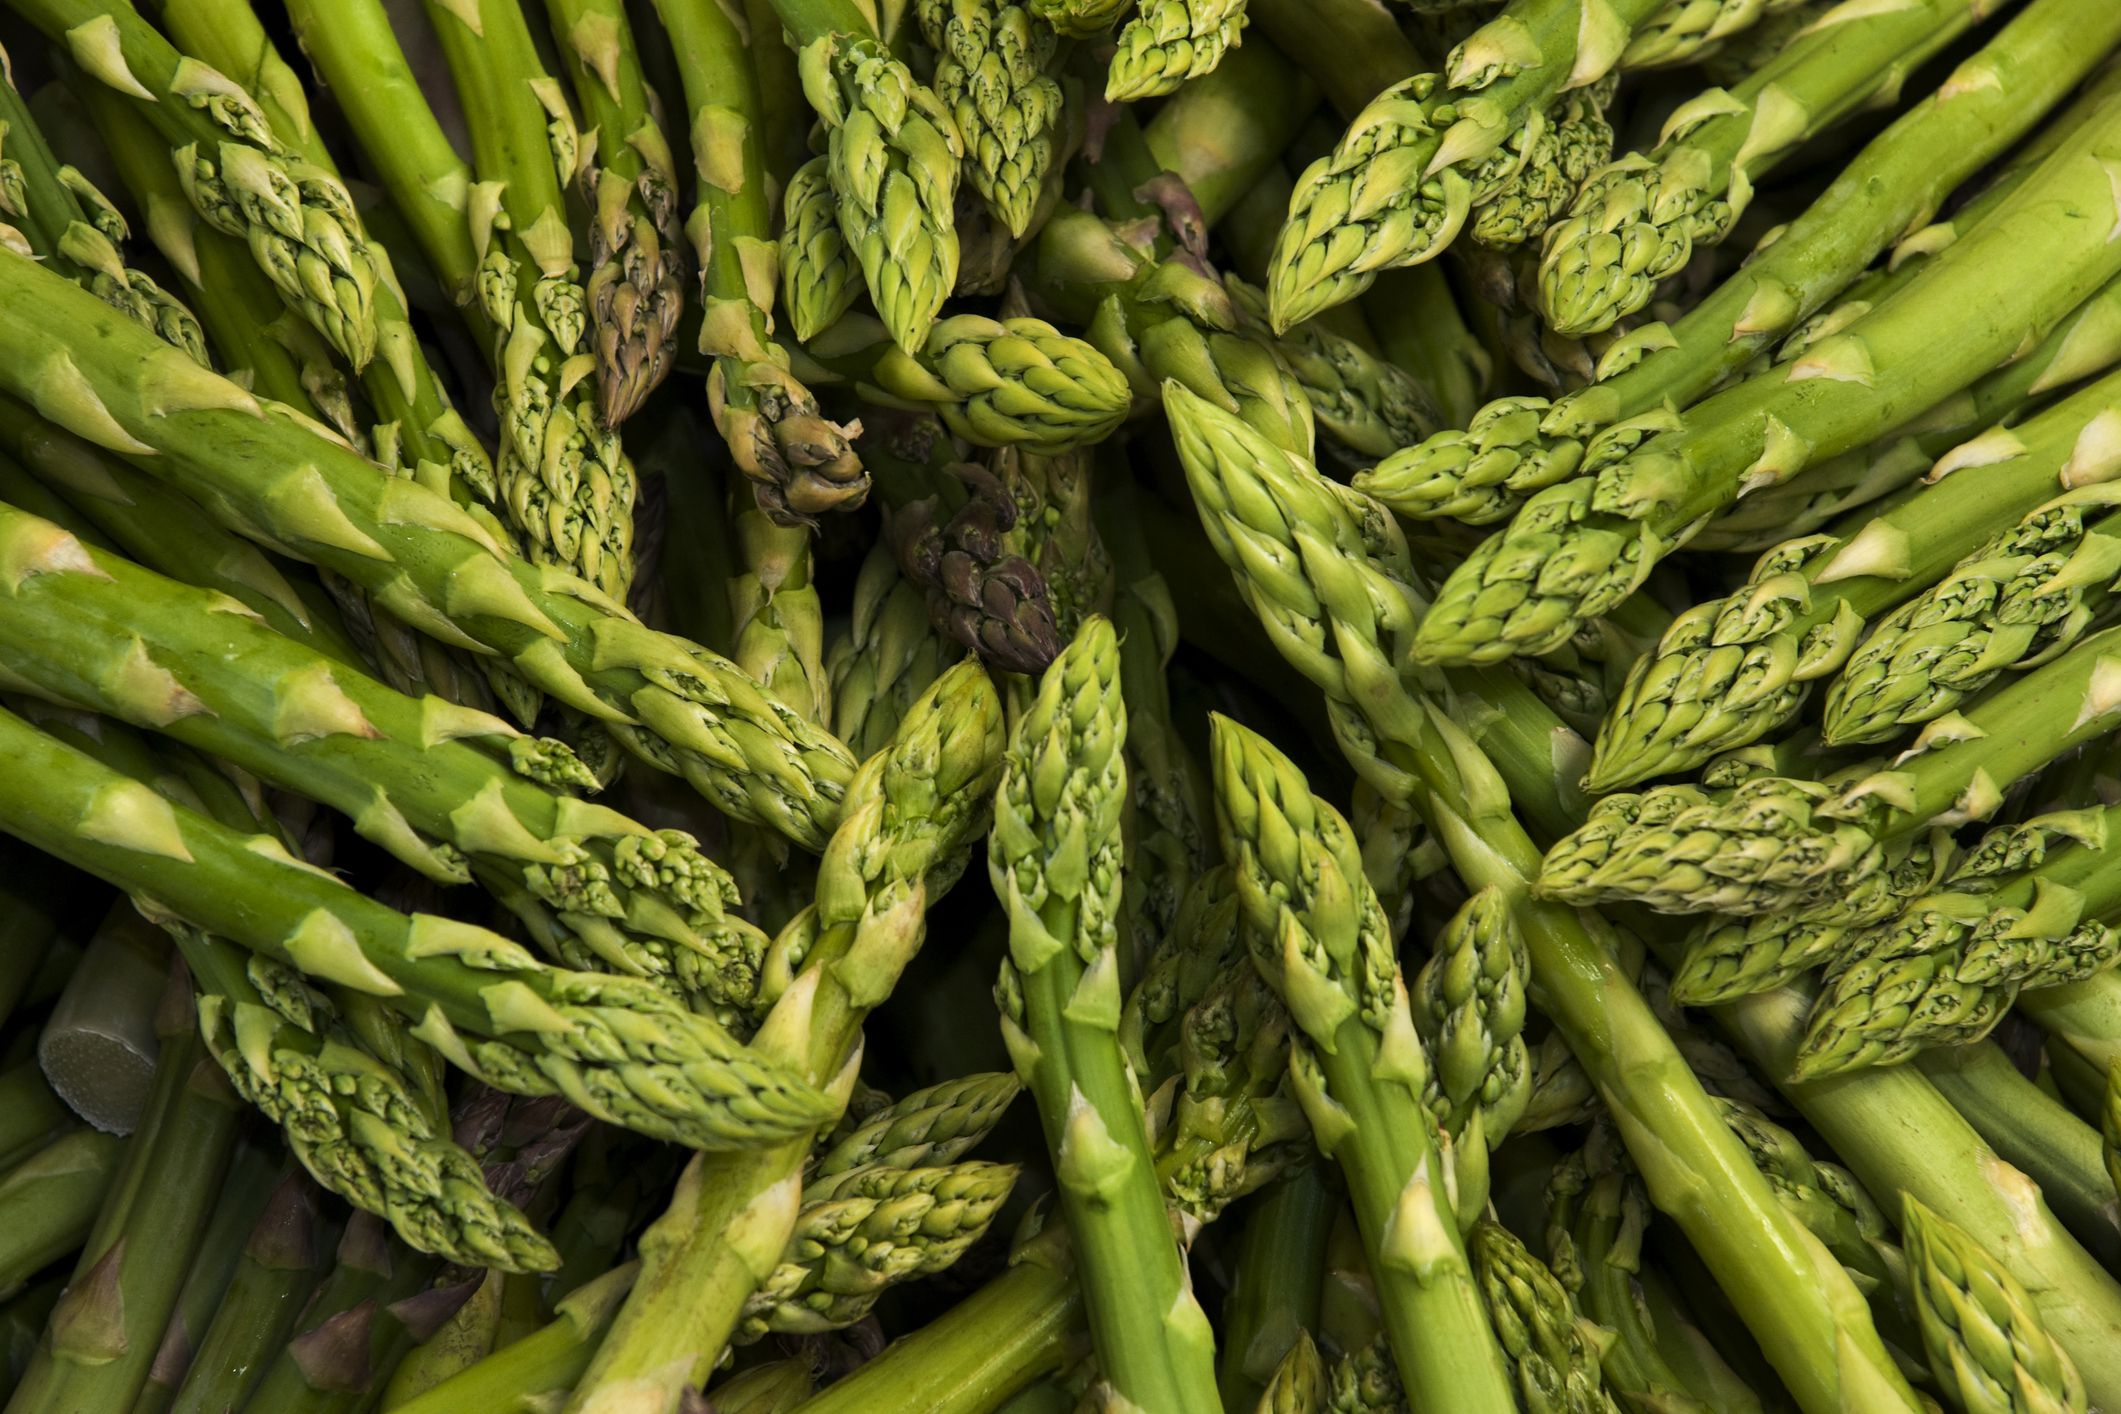 Asparagus Nutrition Facts Calories And Health Benefits